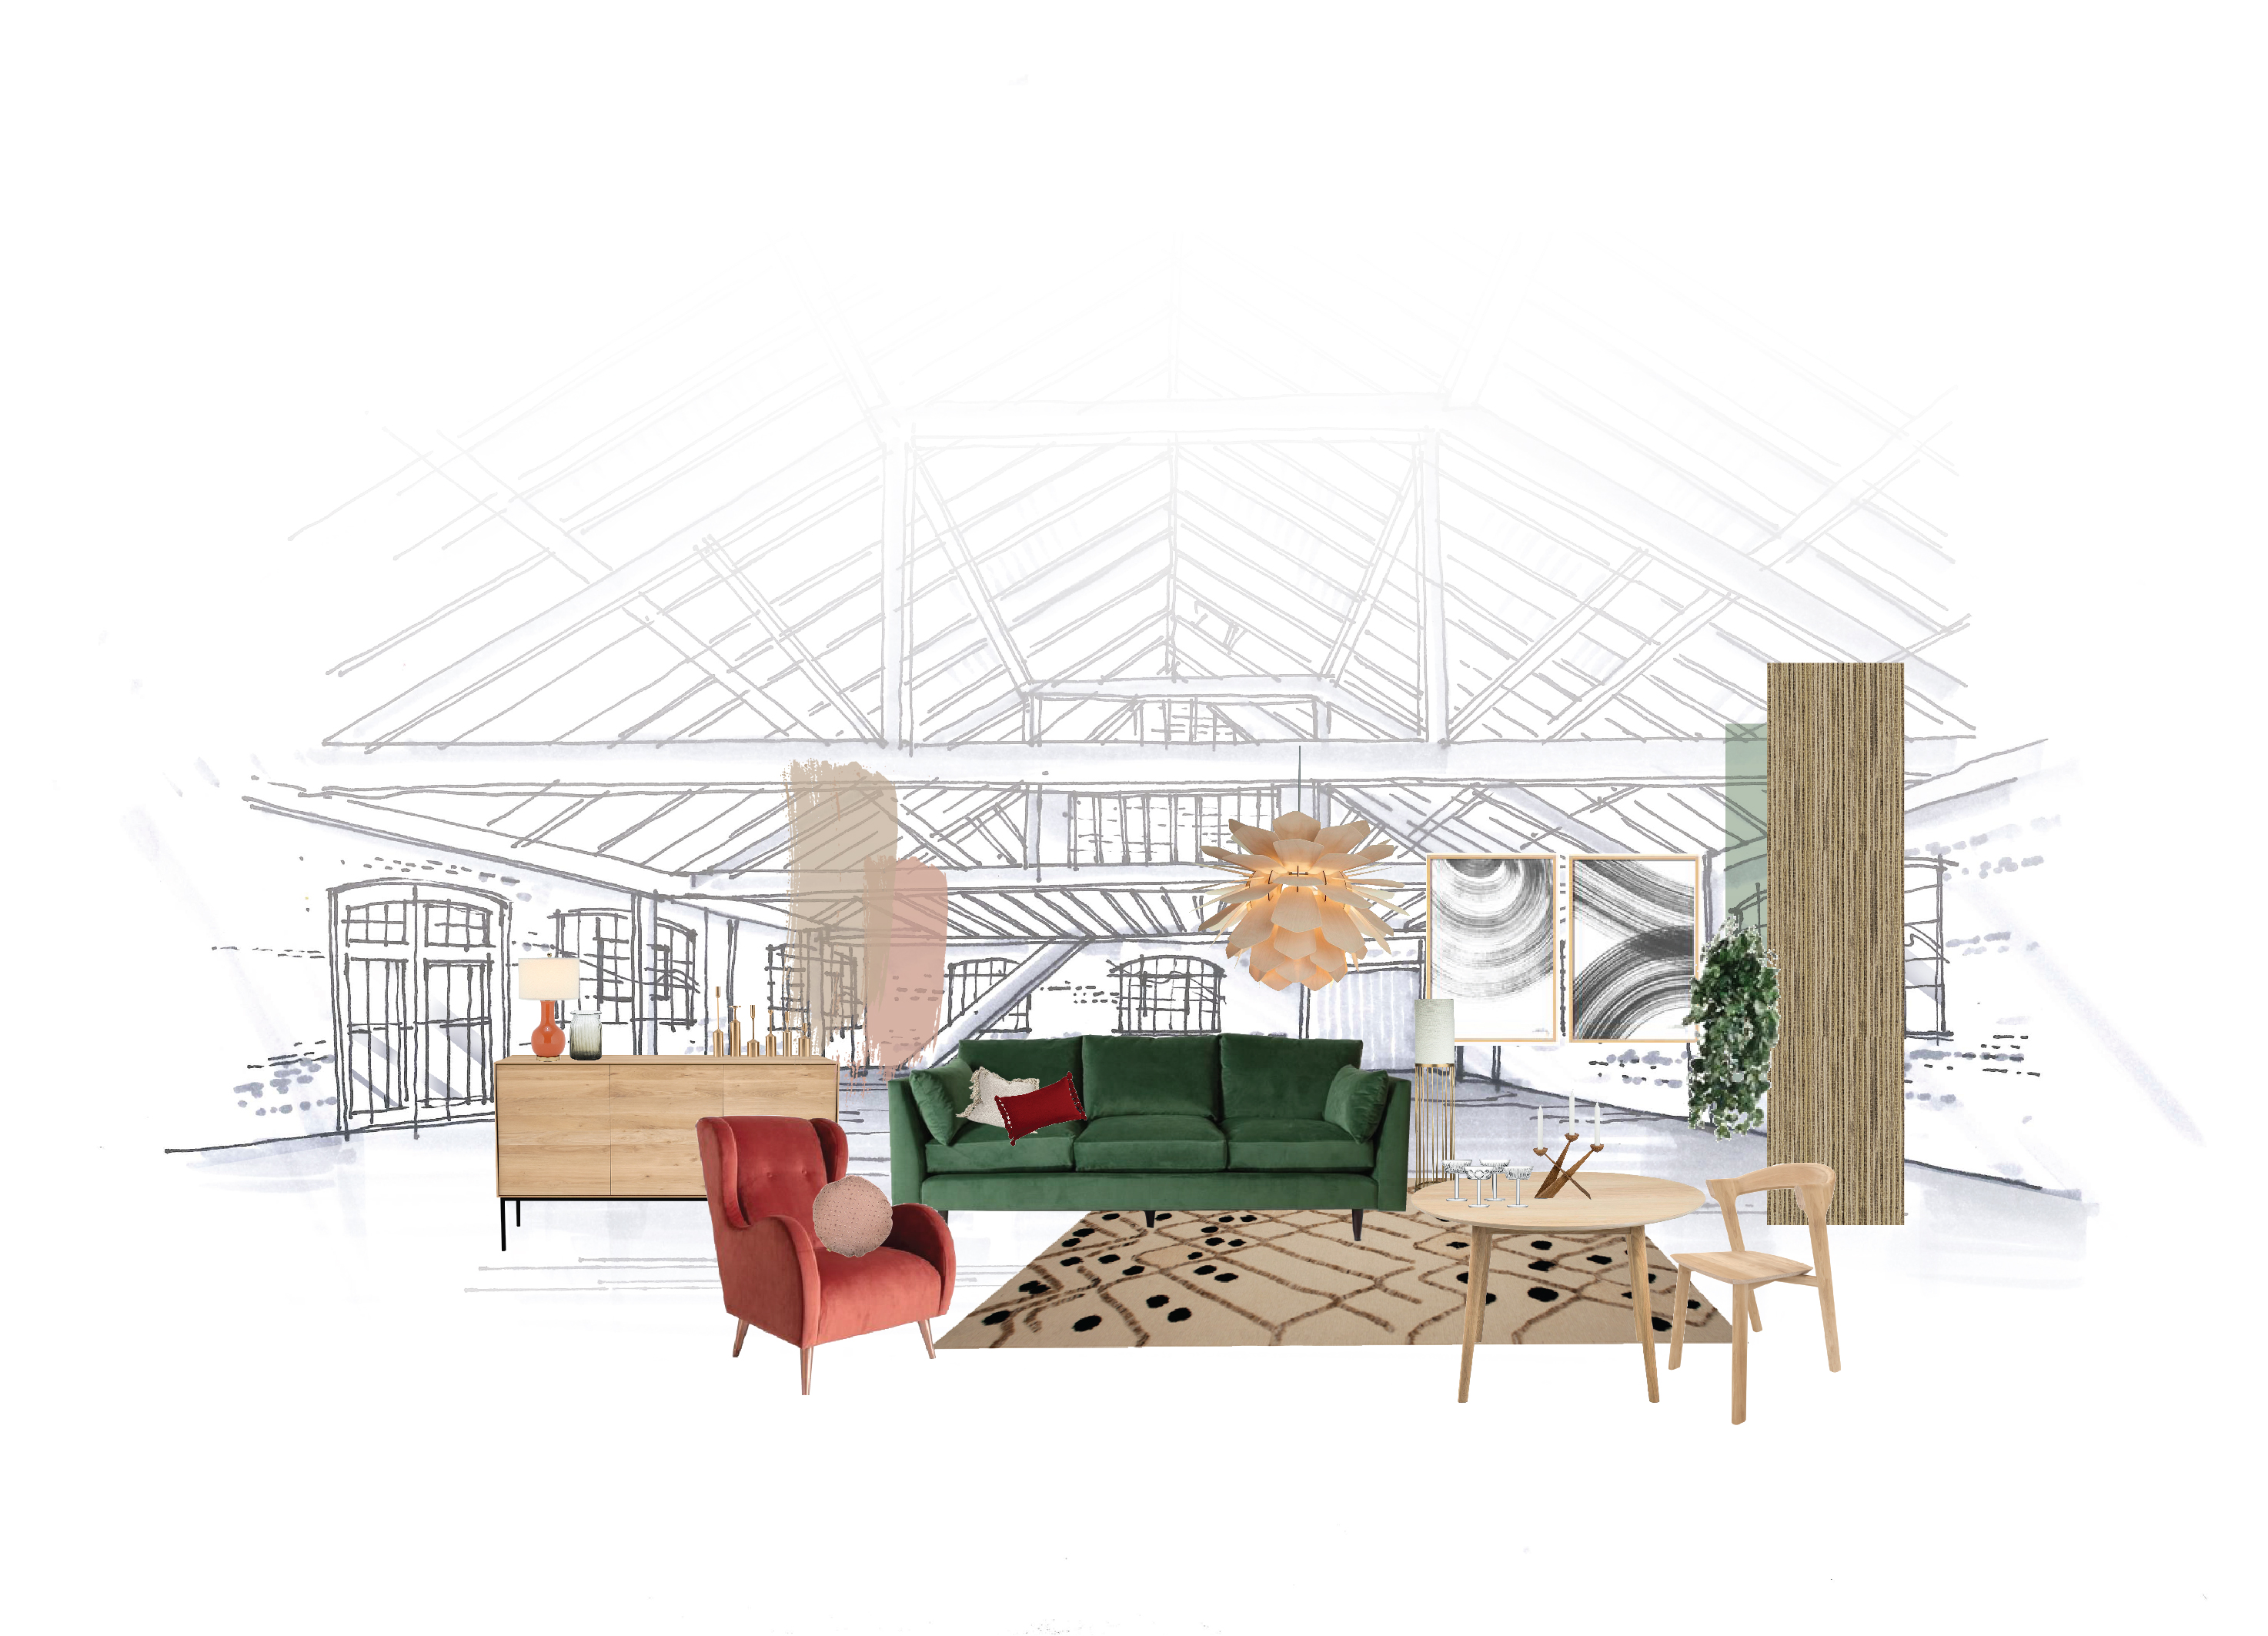 DreamHouzz pop-up visual 2